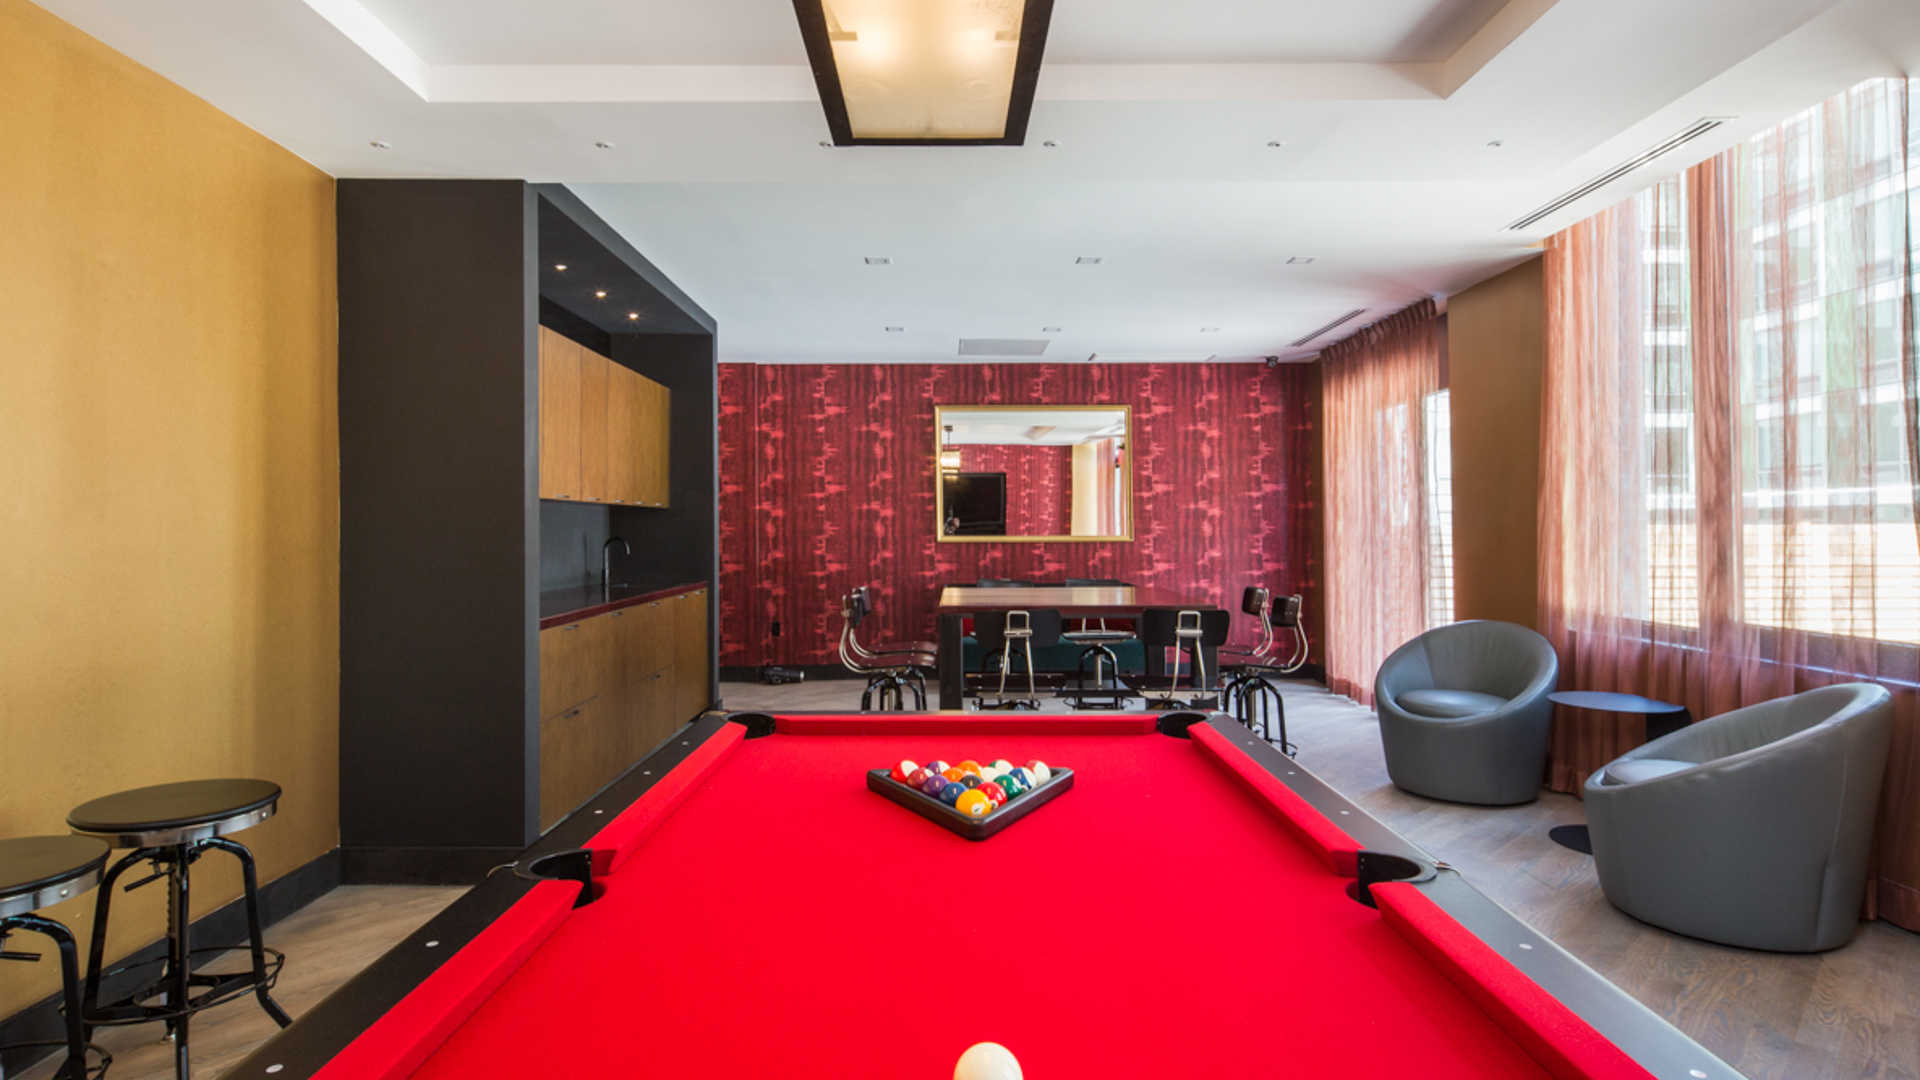 Atelier apartments lounge with pool table